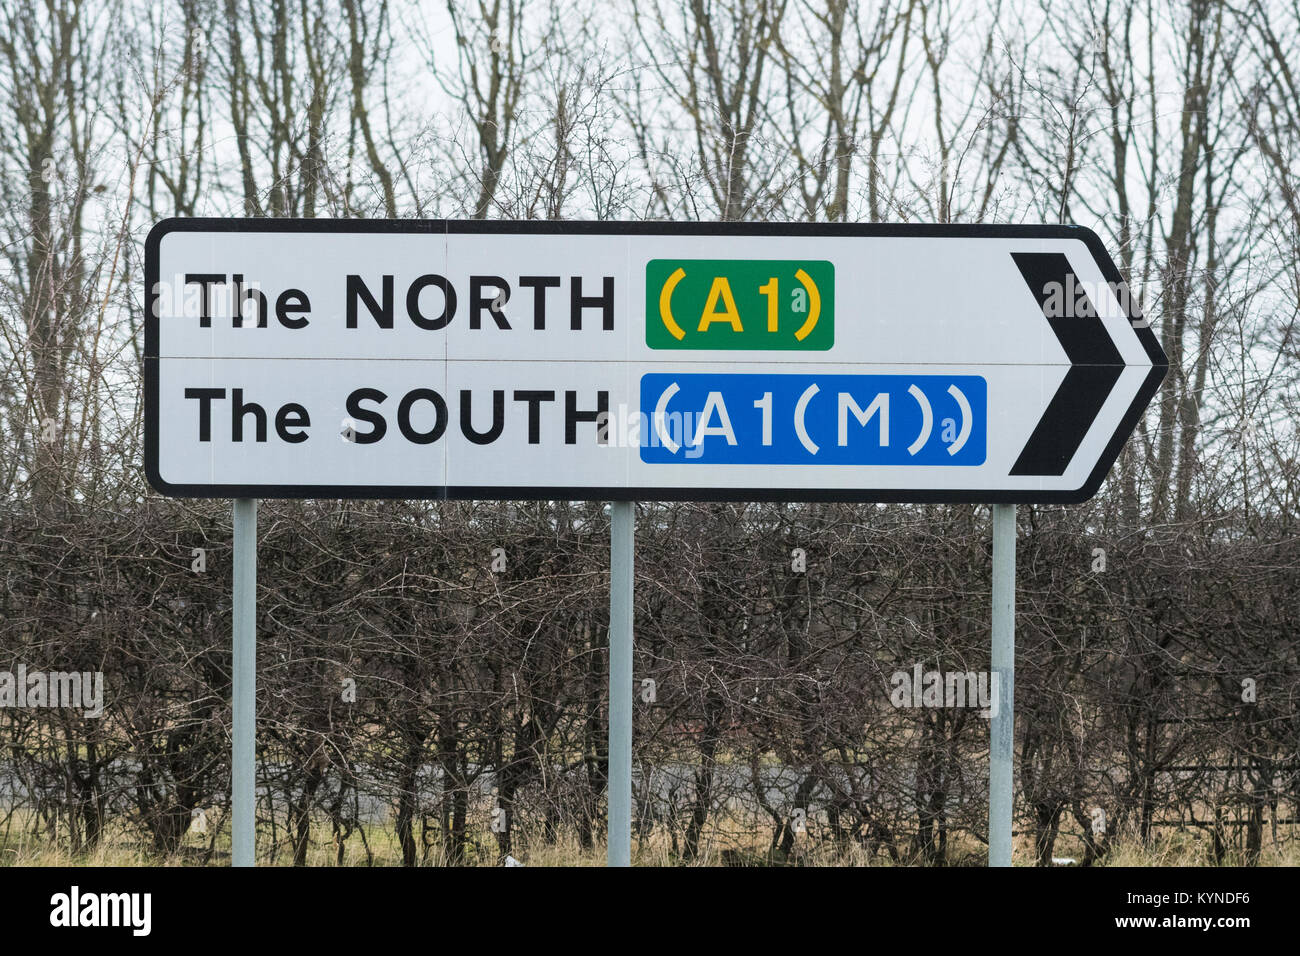 The North The South A1 A1(M) road sign - north and south pointing in the same direction - Stock Image